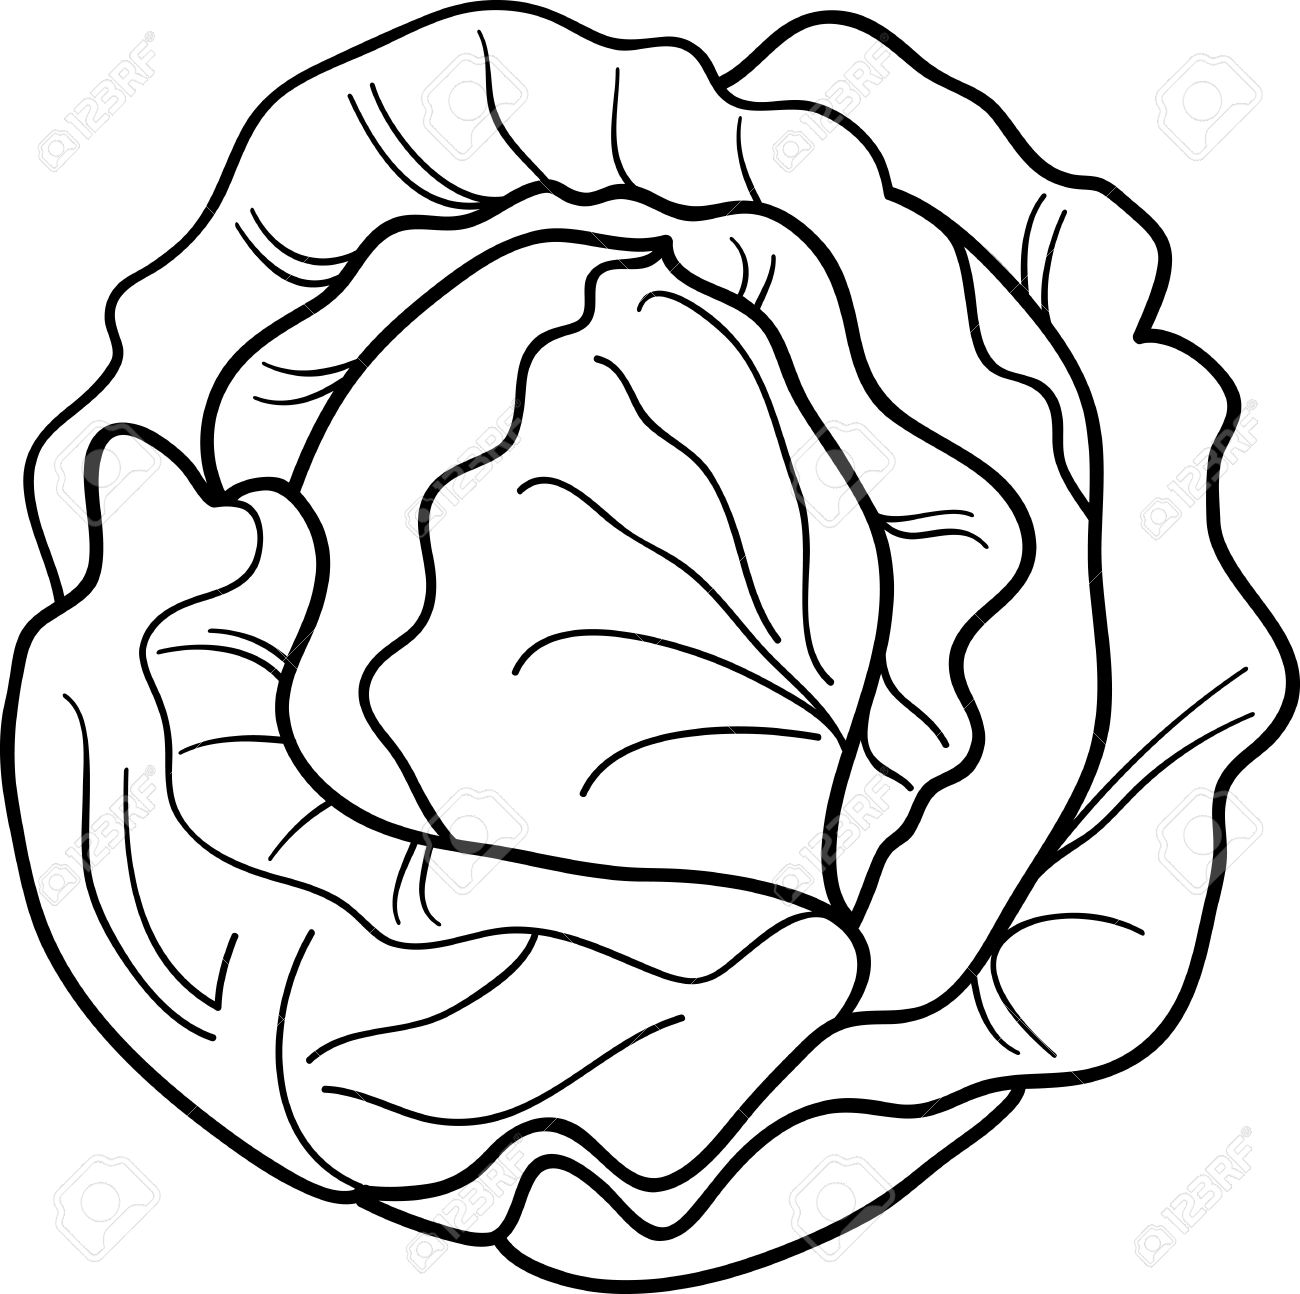 Cabbage clipart drawing. Collection of free download